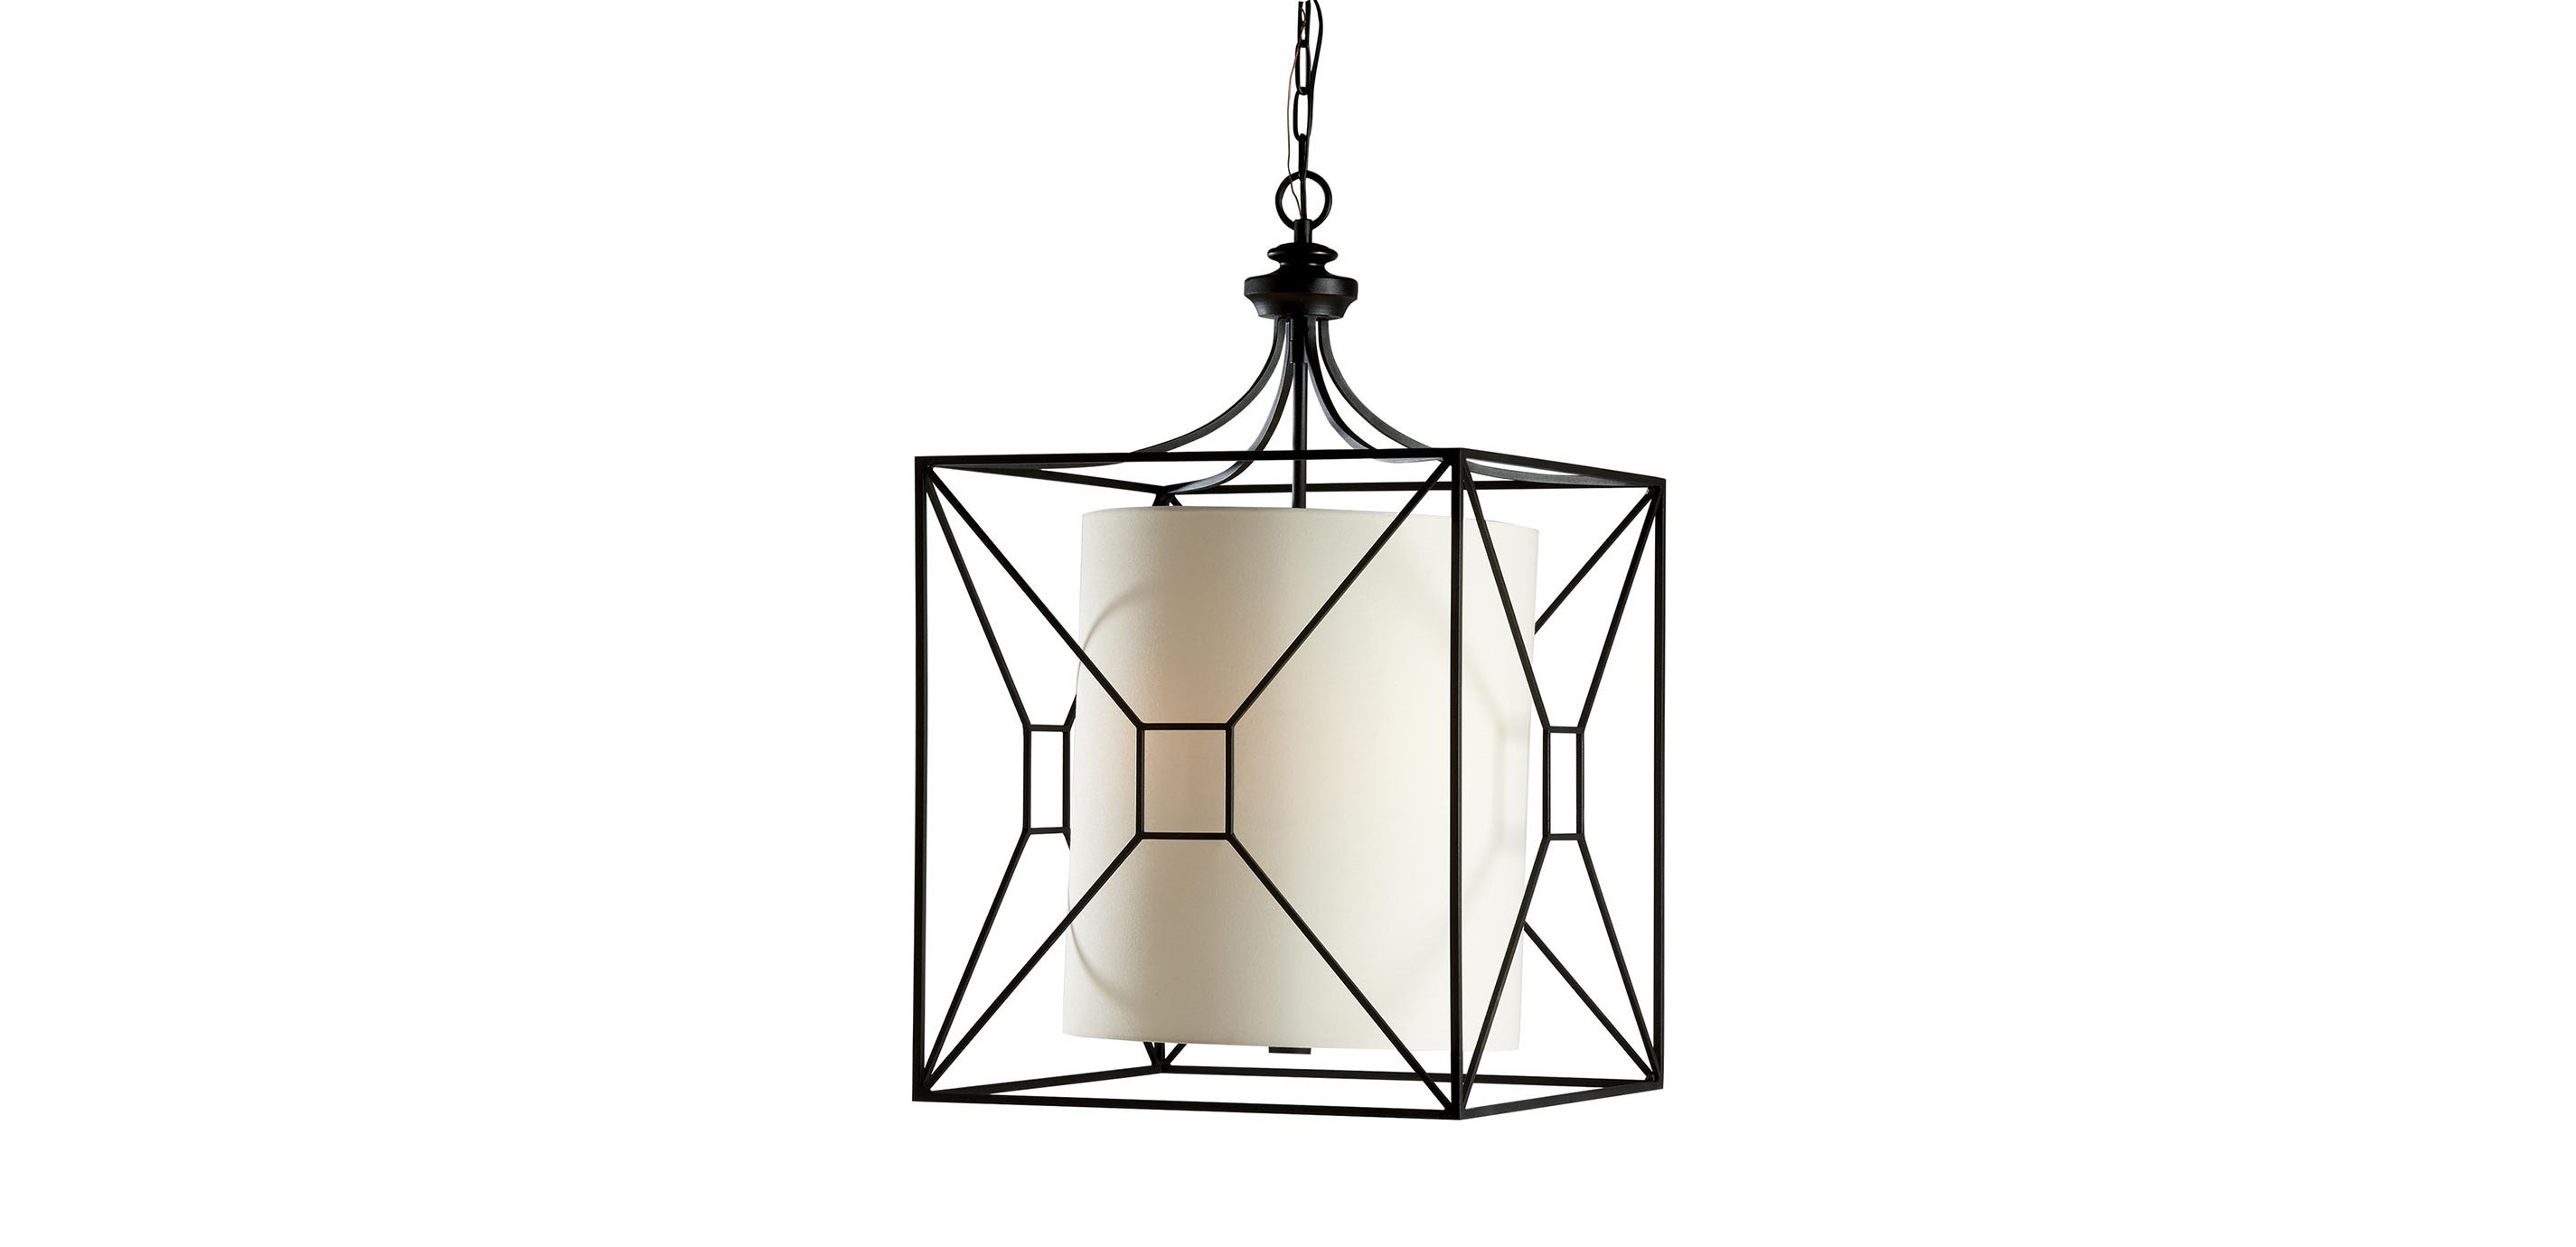 value re india artisans finely chandelier our at orb metal crafted exclusive to we present pin an style and in lantern available by unbeatable proud